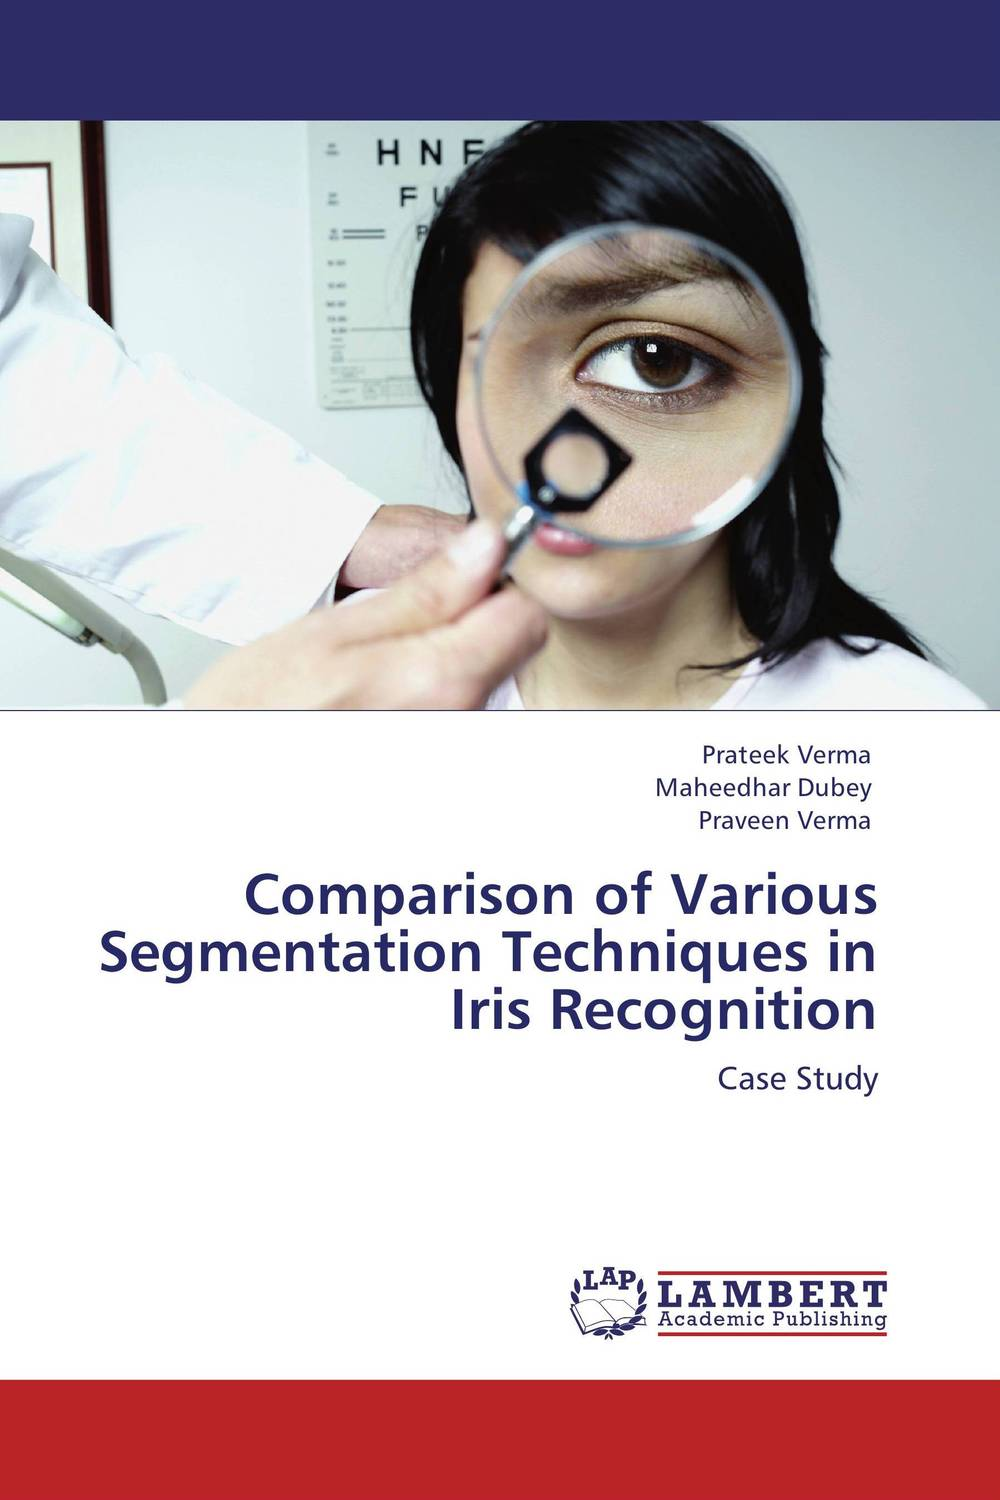 Comparison of Various Segmentation Techniques in Iris Recognition clustering and optimization based image segmentation techniques